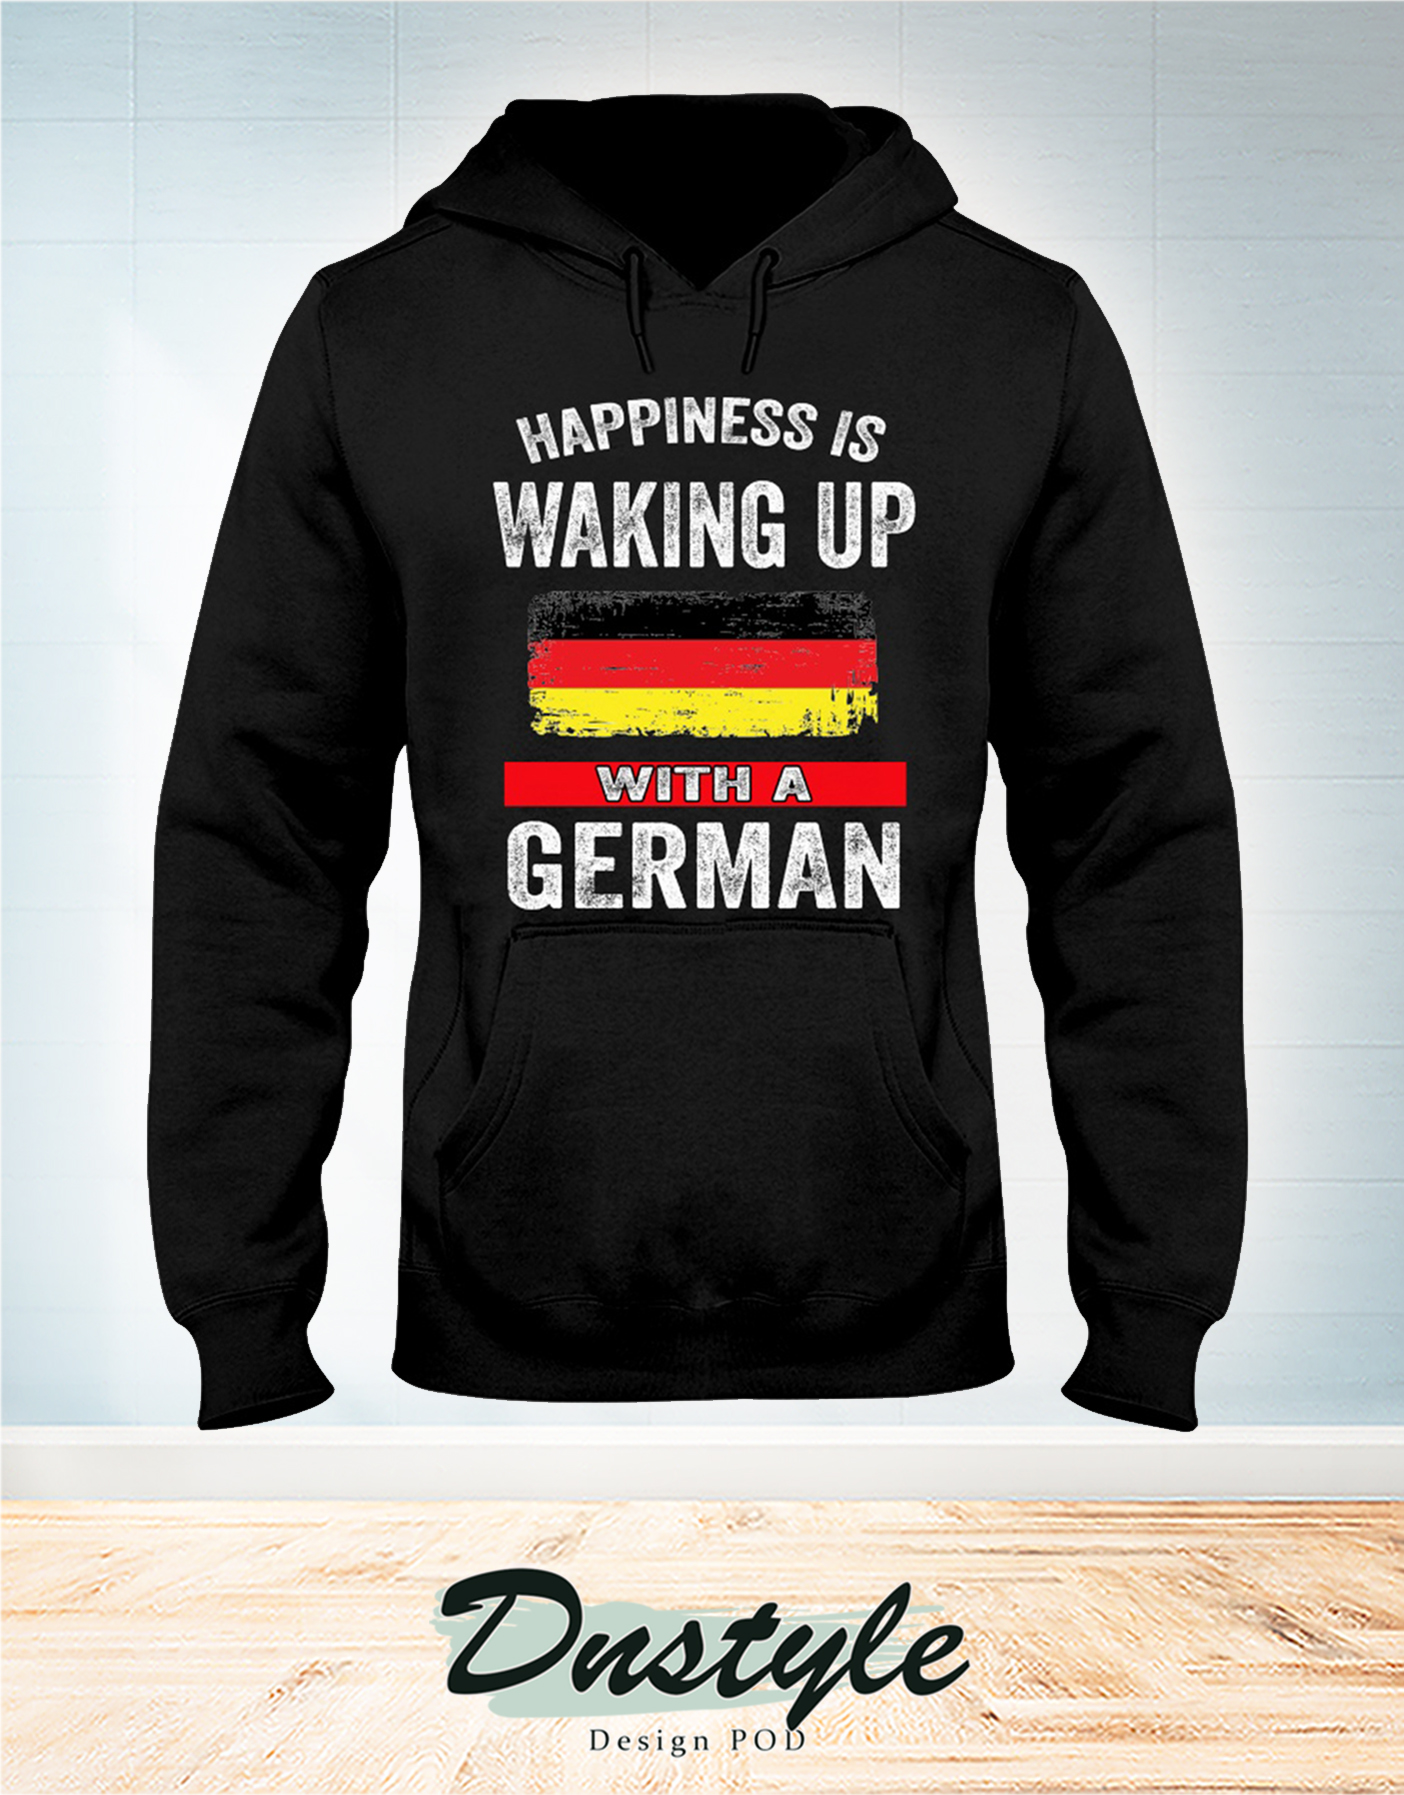 Happiness is waking up with a German hoodie